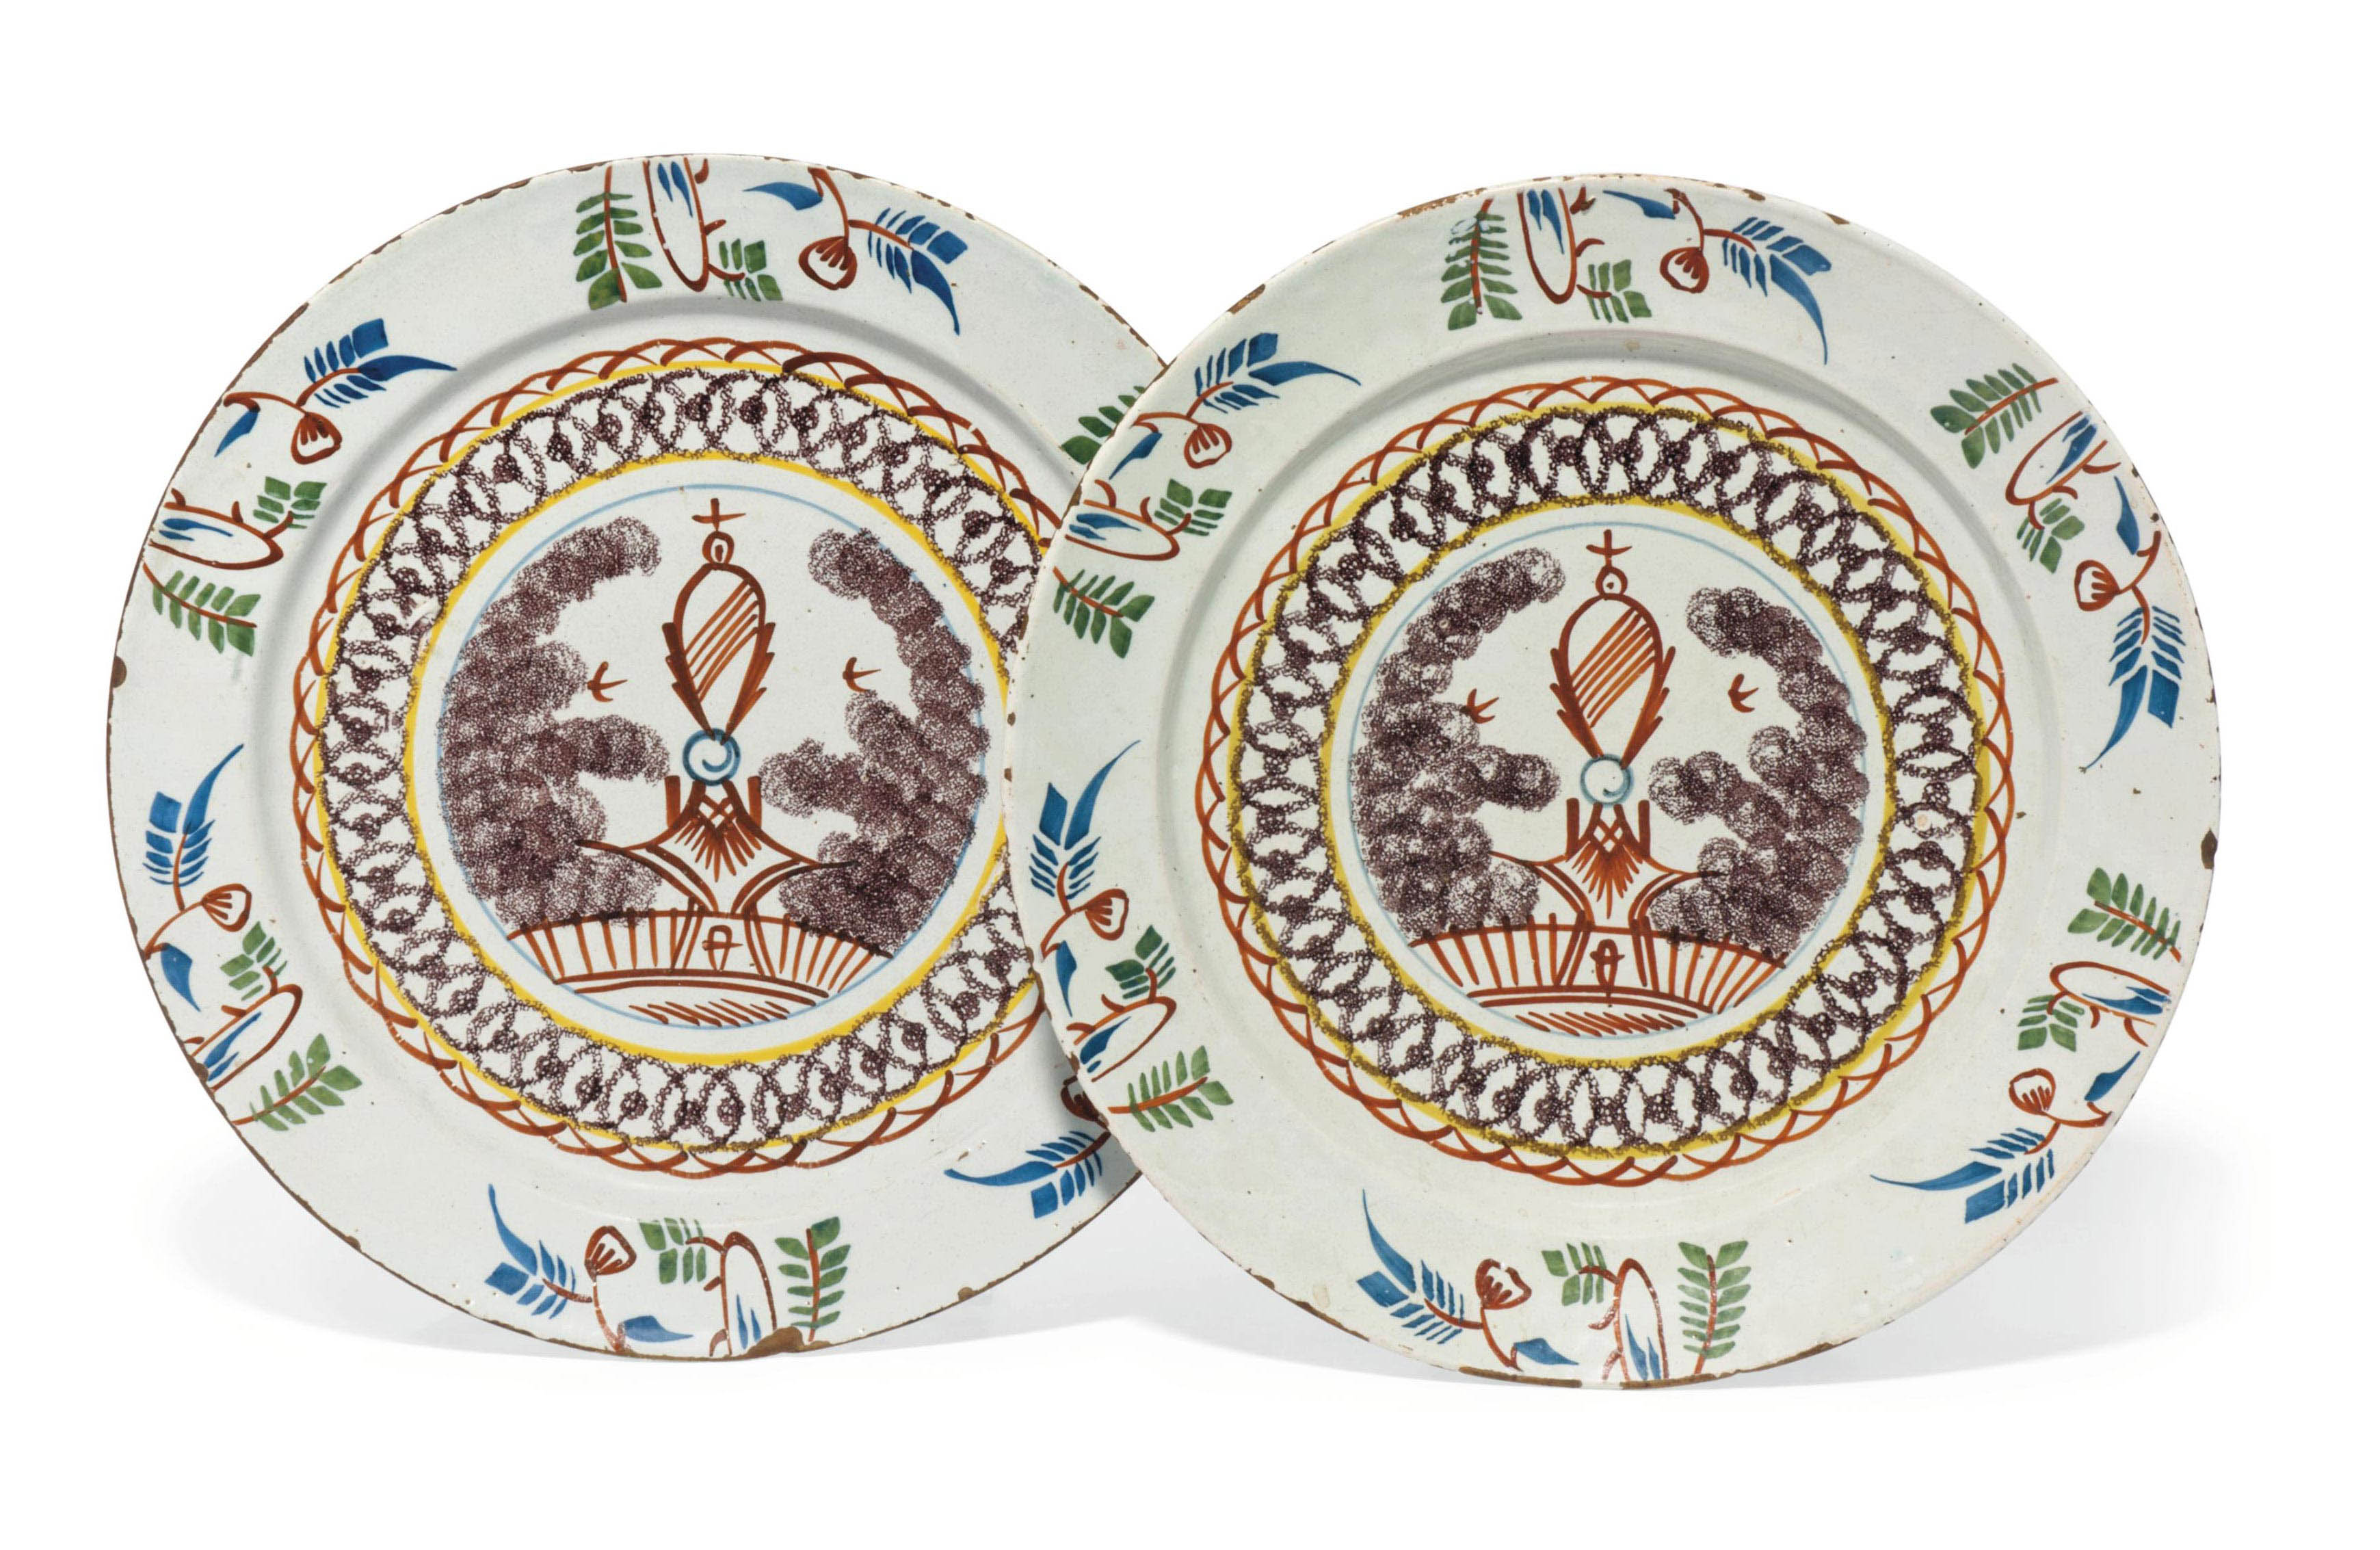 A PAIR OF ENGLISH DELFT POLYCHROME PLATES